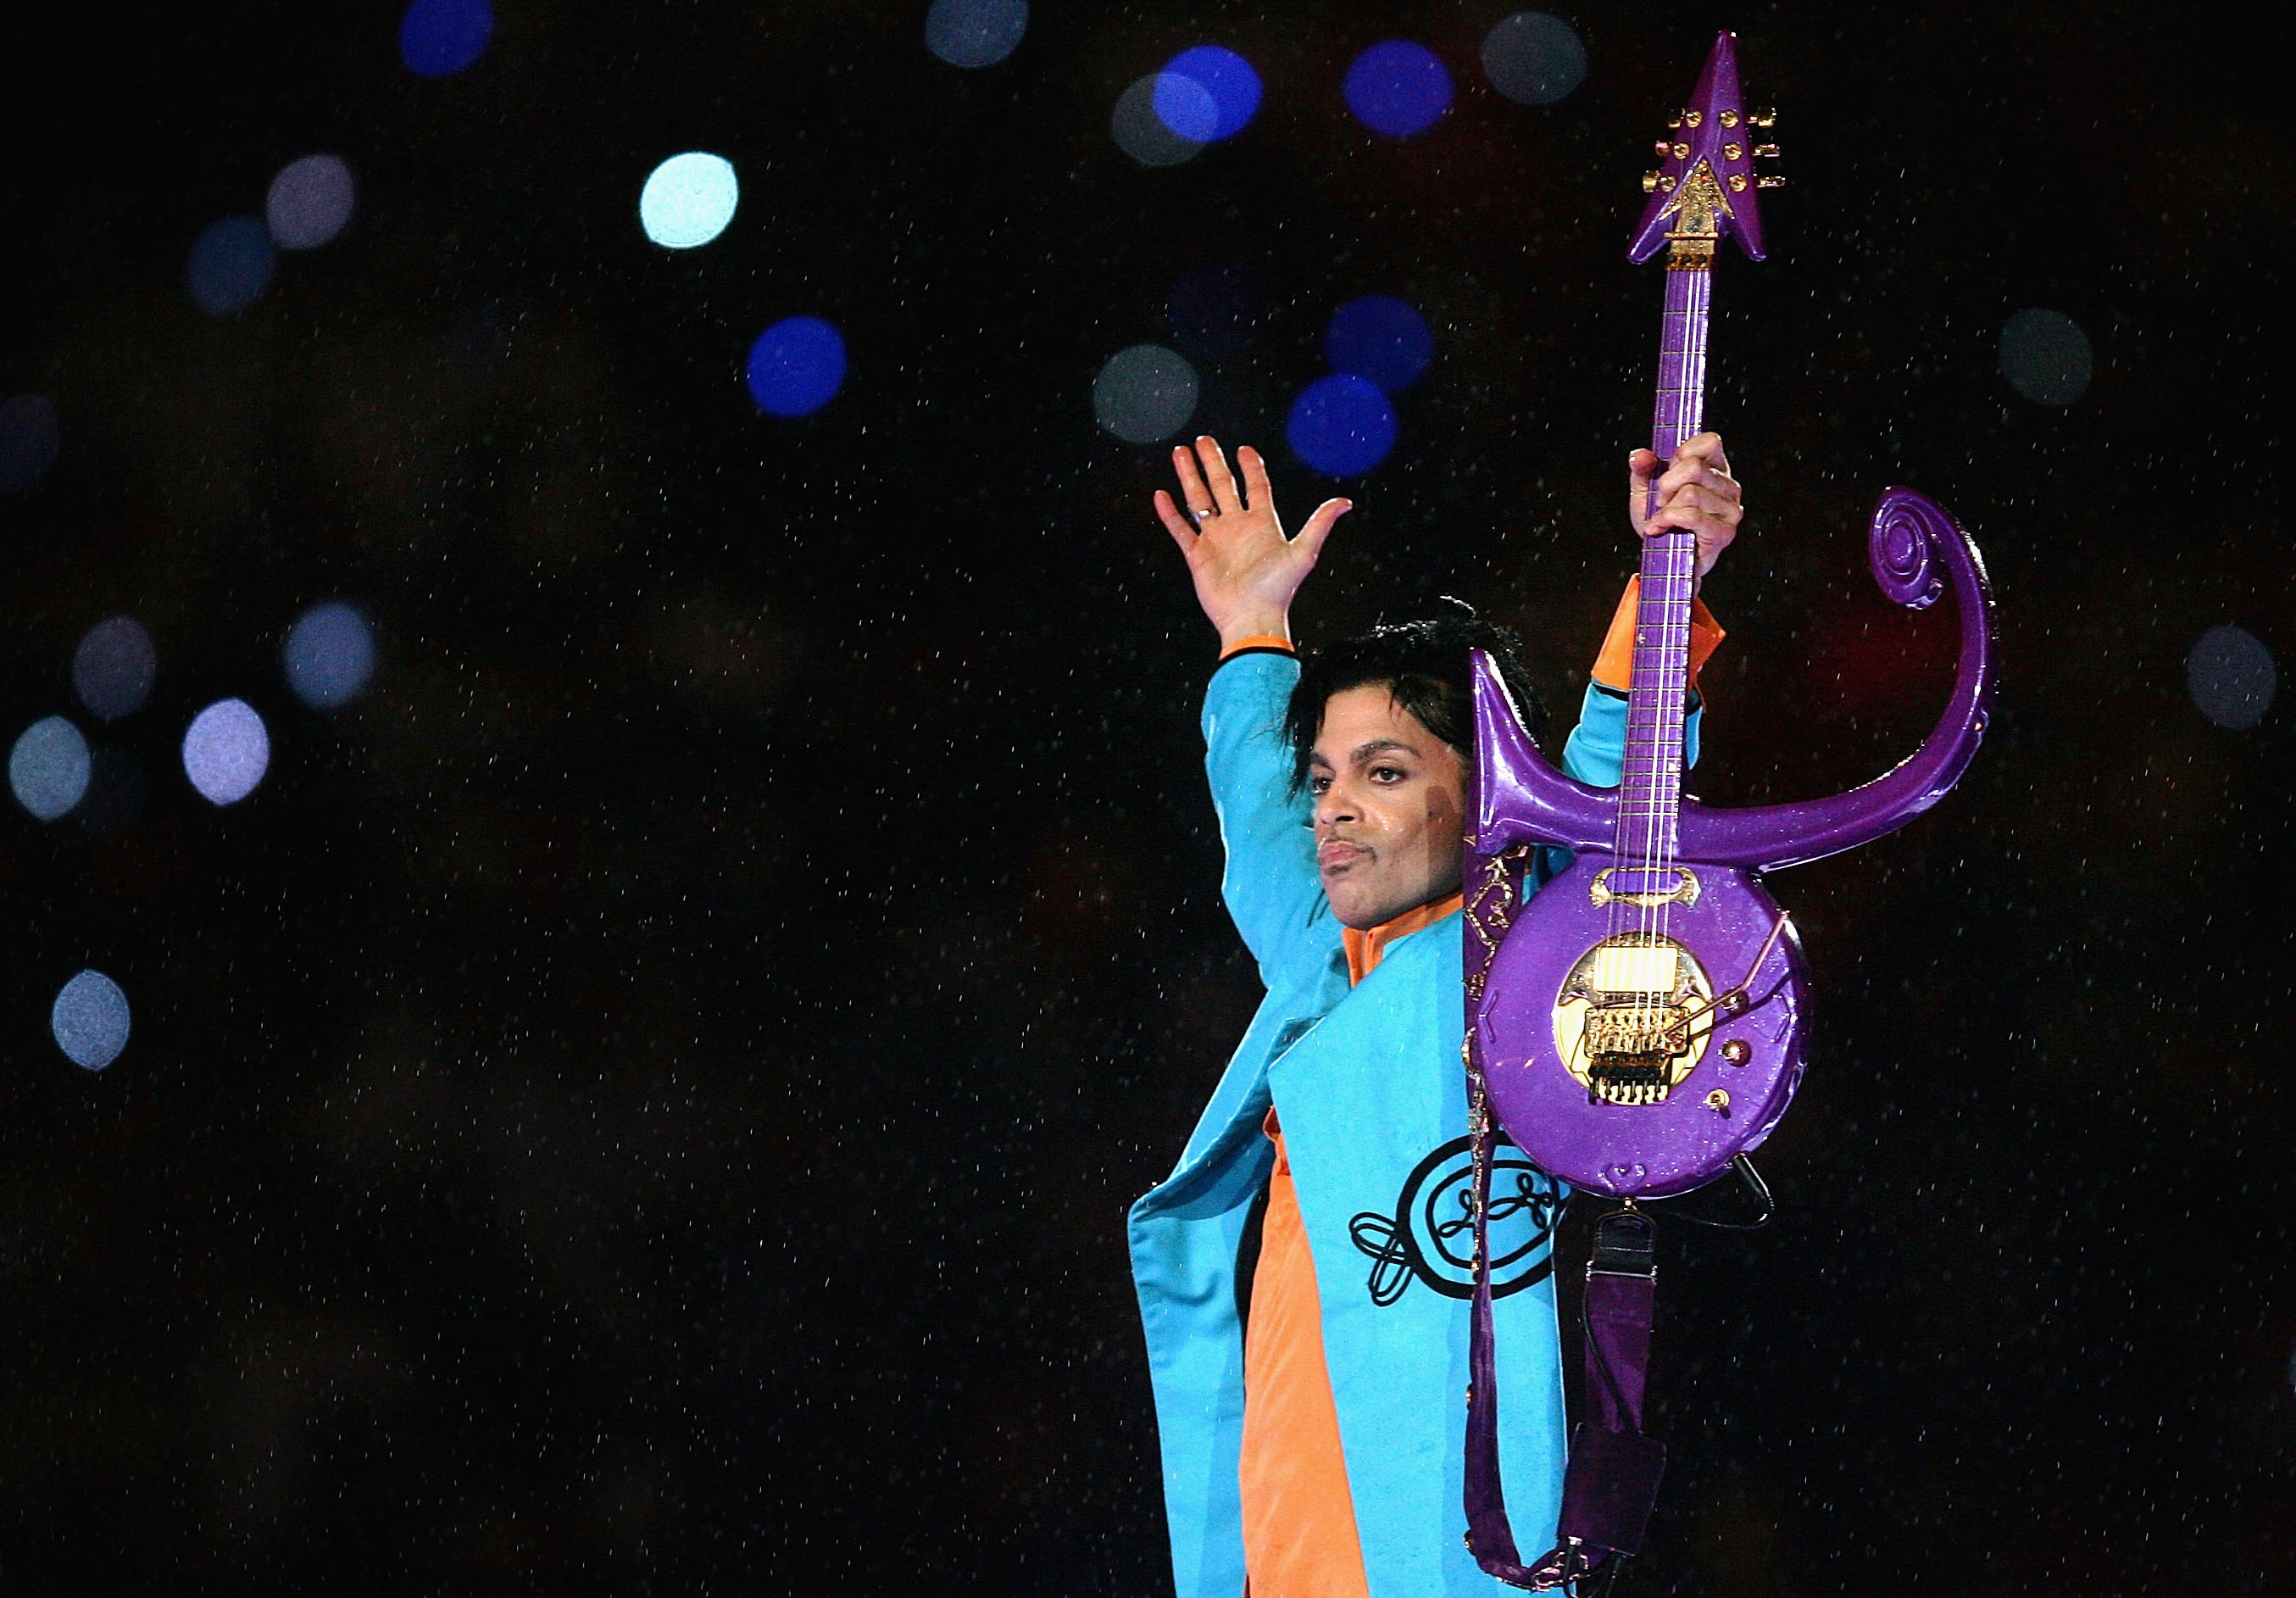 Why did prince change his name to a symbol vox super bowl xli pepsi halftime show biocorpaavc